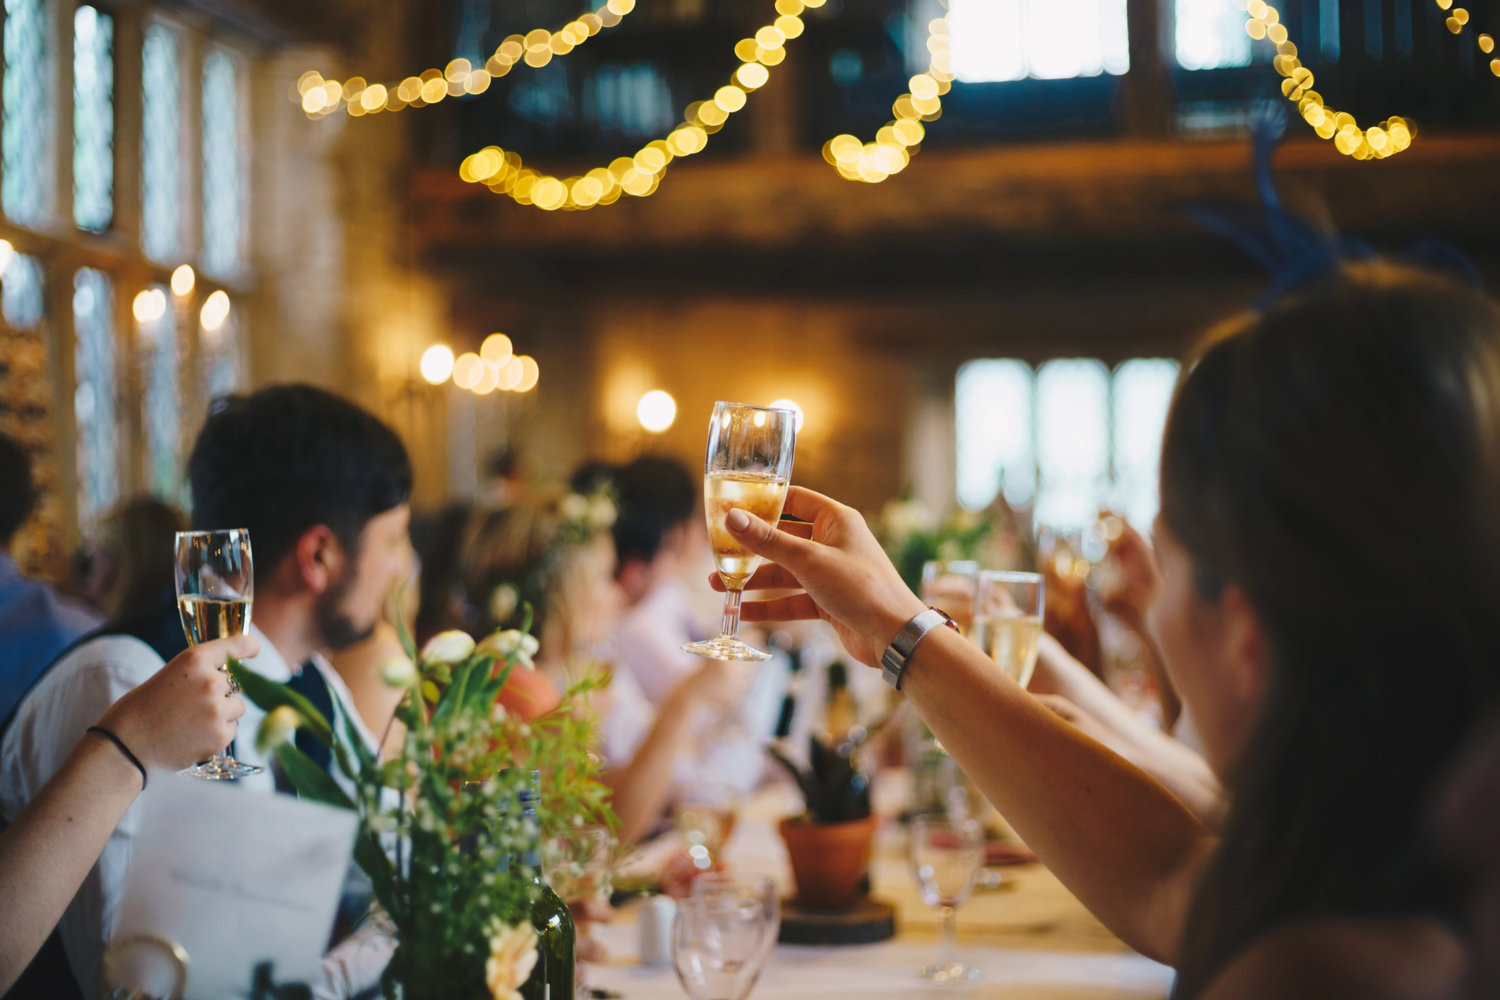 How to Entertain Guests During Your Socially-Distant COVID-19 Wedding 3